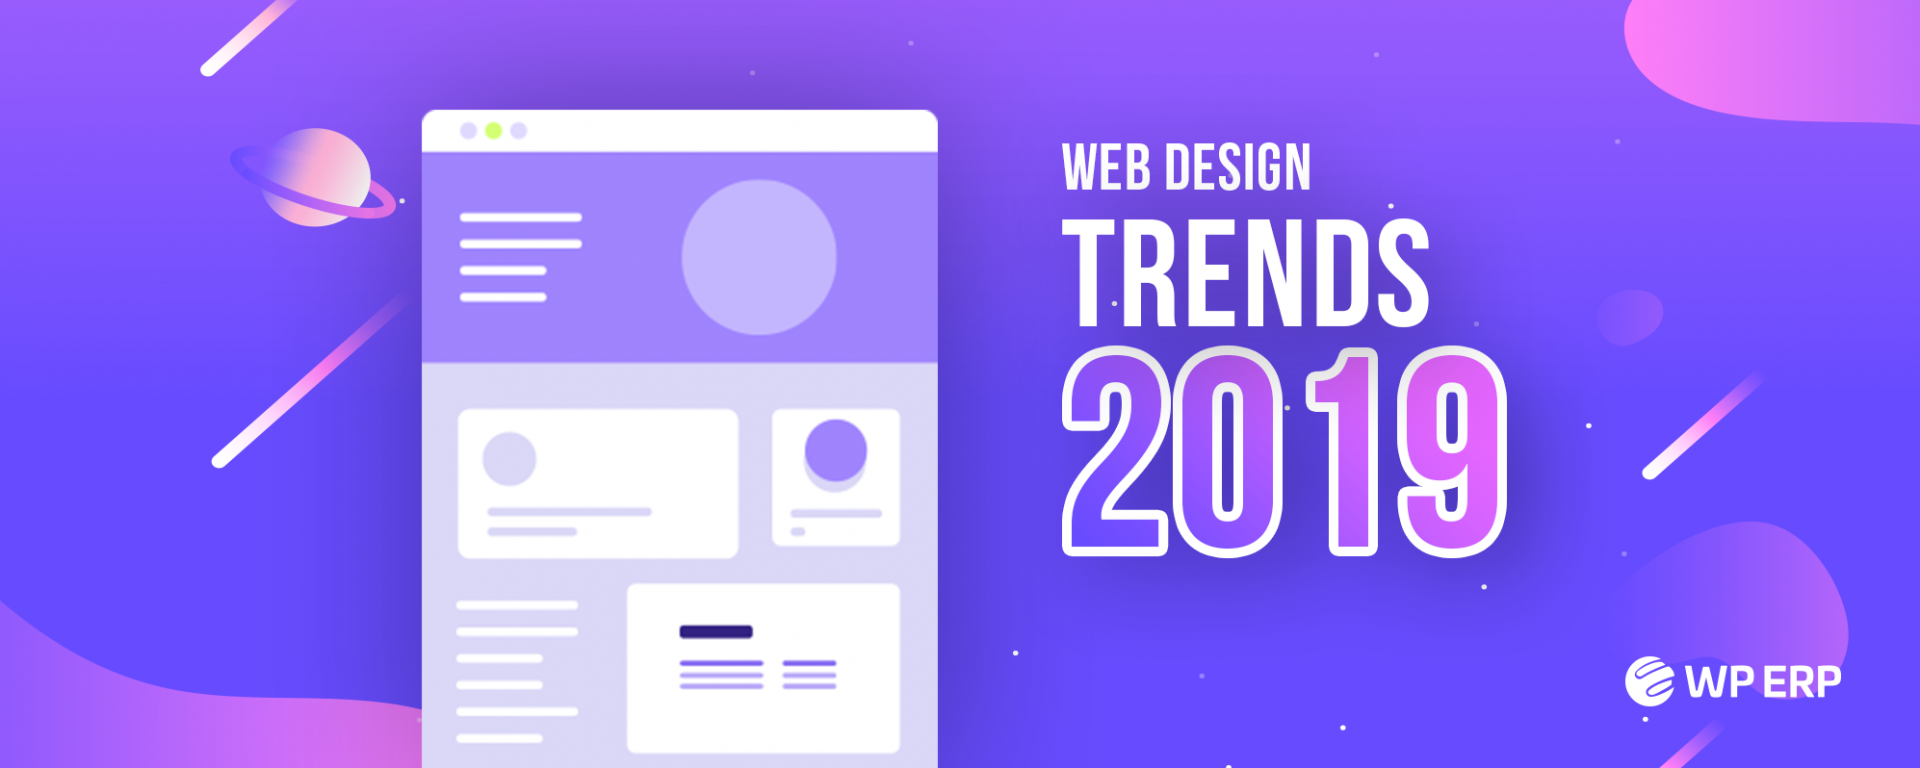 9 Wholesome Web Design Trends You Should Check Out In 2020